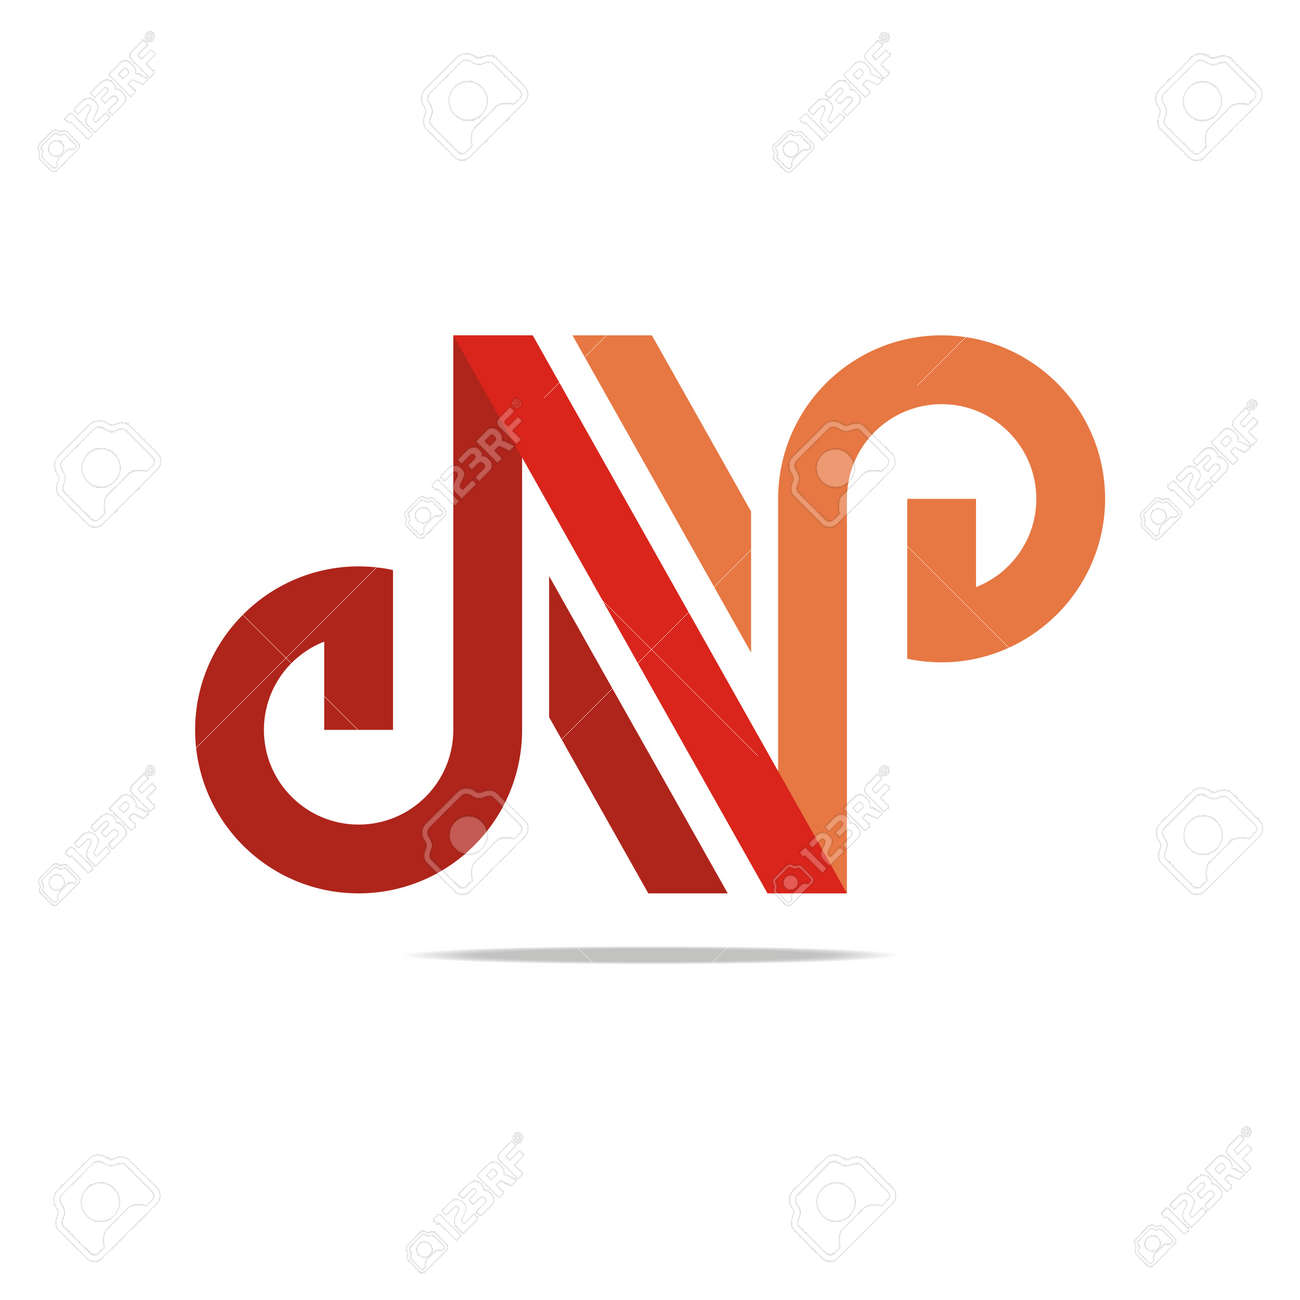 Element symbol n gallery meaning of text symbols logo abstract letter n combination design element symbol icon urtaz Image collections